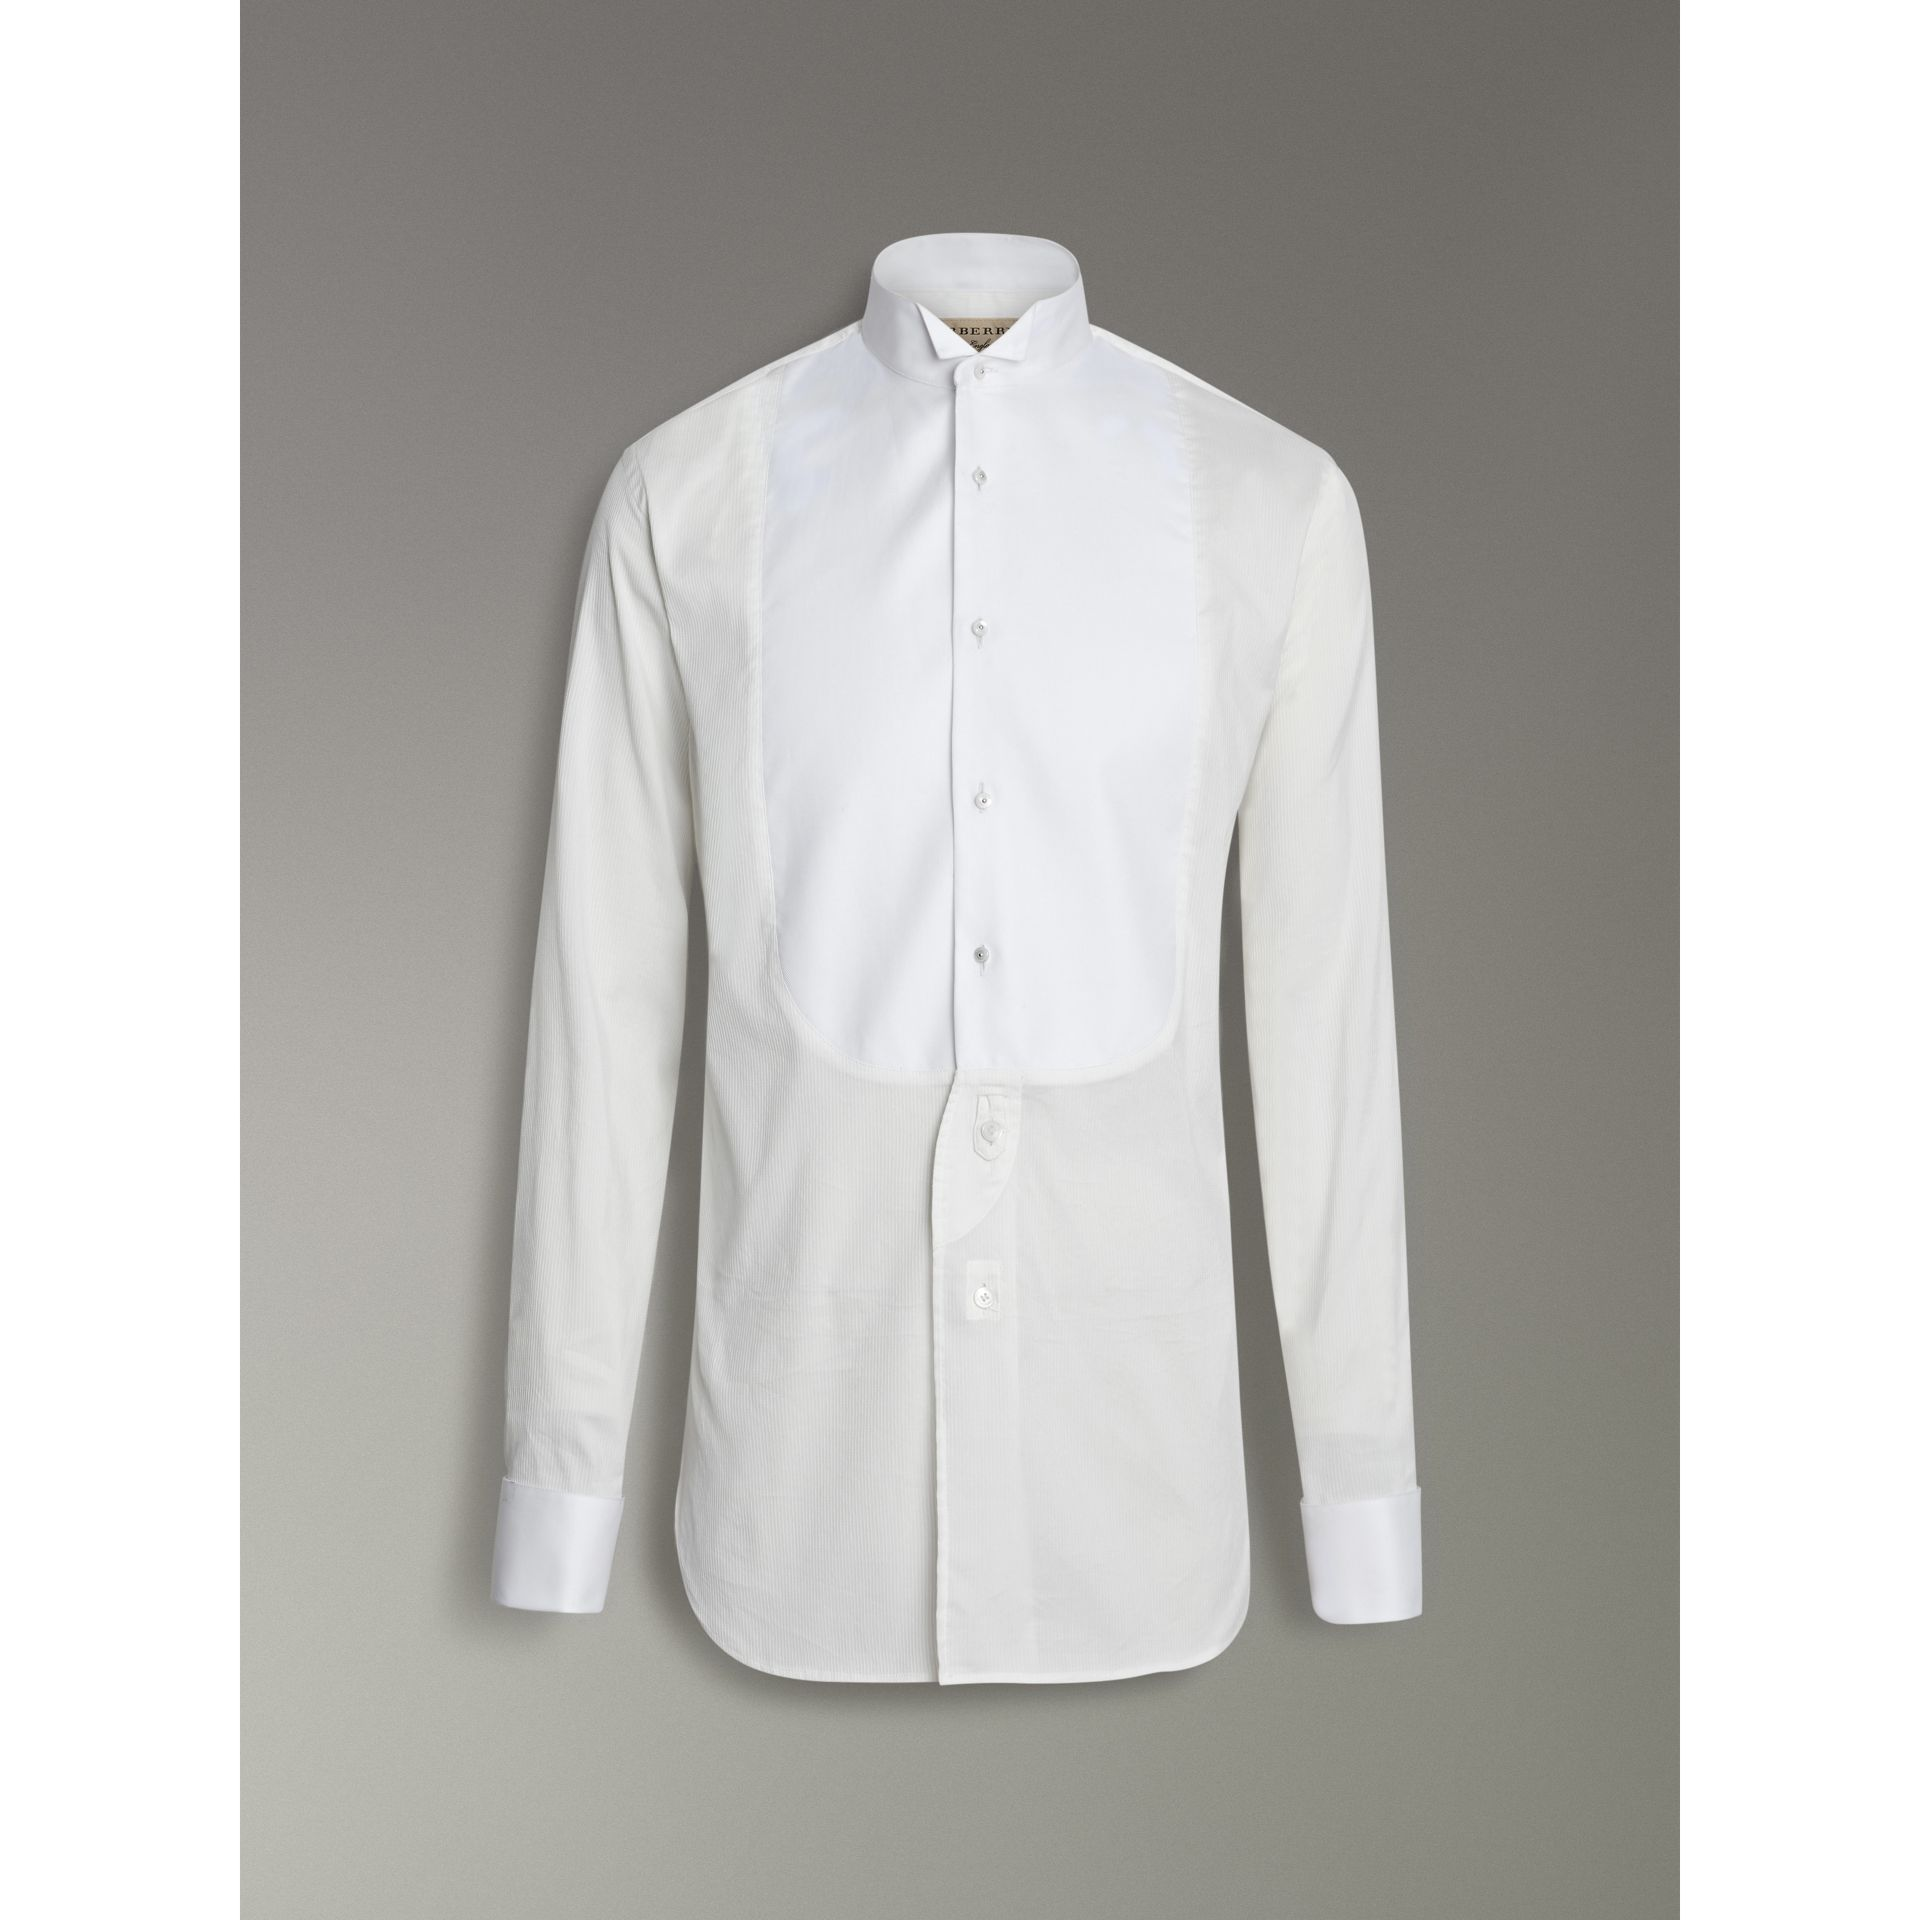 Modern Fit Panelled Bib Cotton Silk Evening Shirt in White - Men | Burberry - gallery image 3